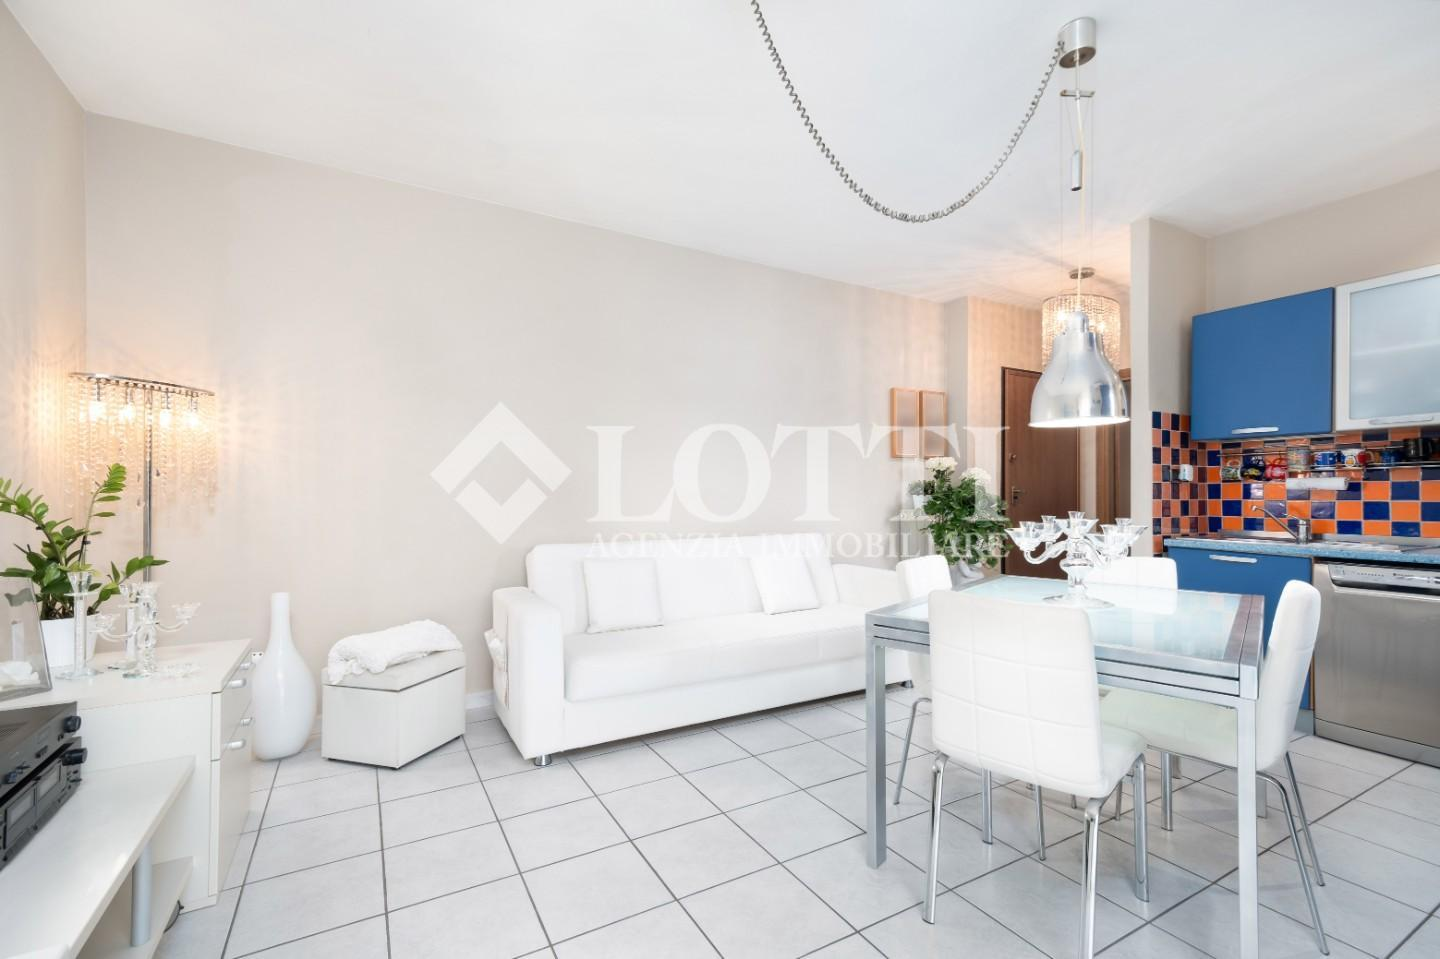 Apartment for sale, ref. 448